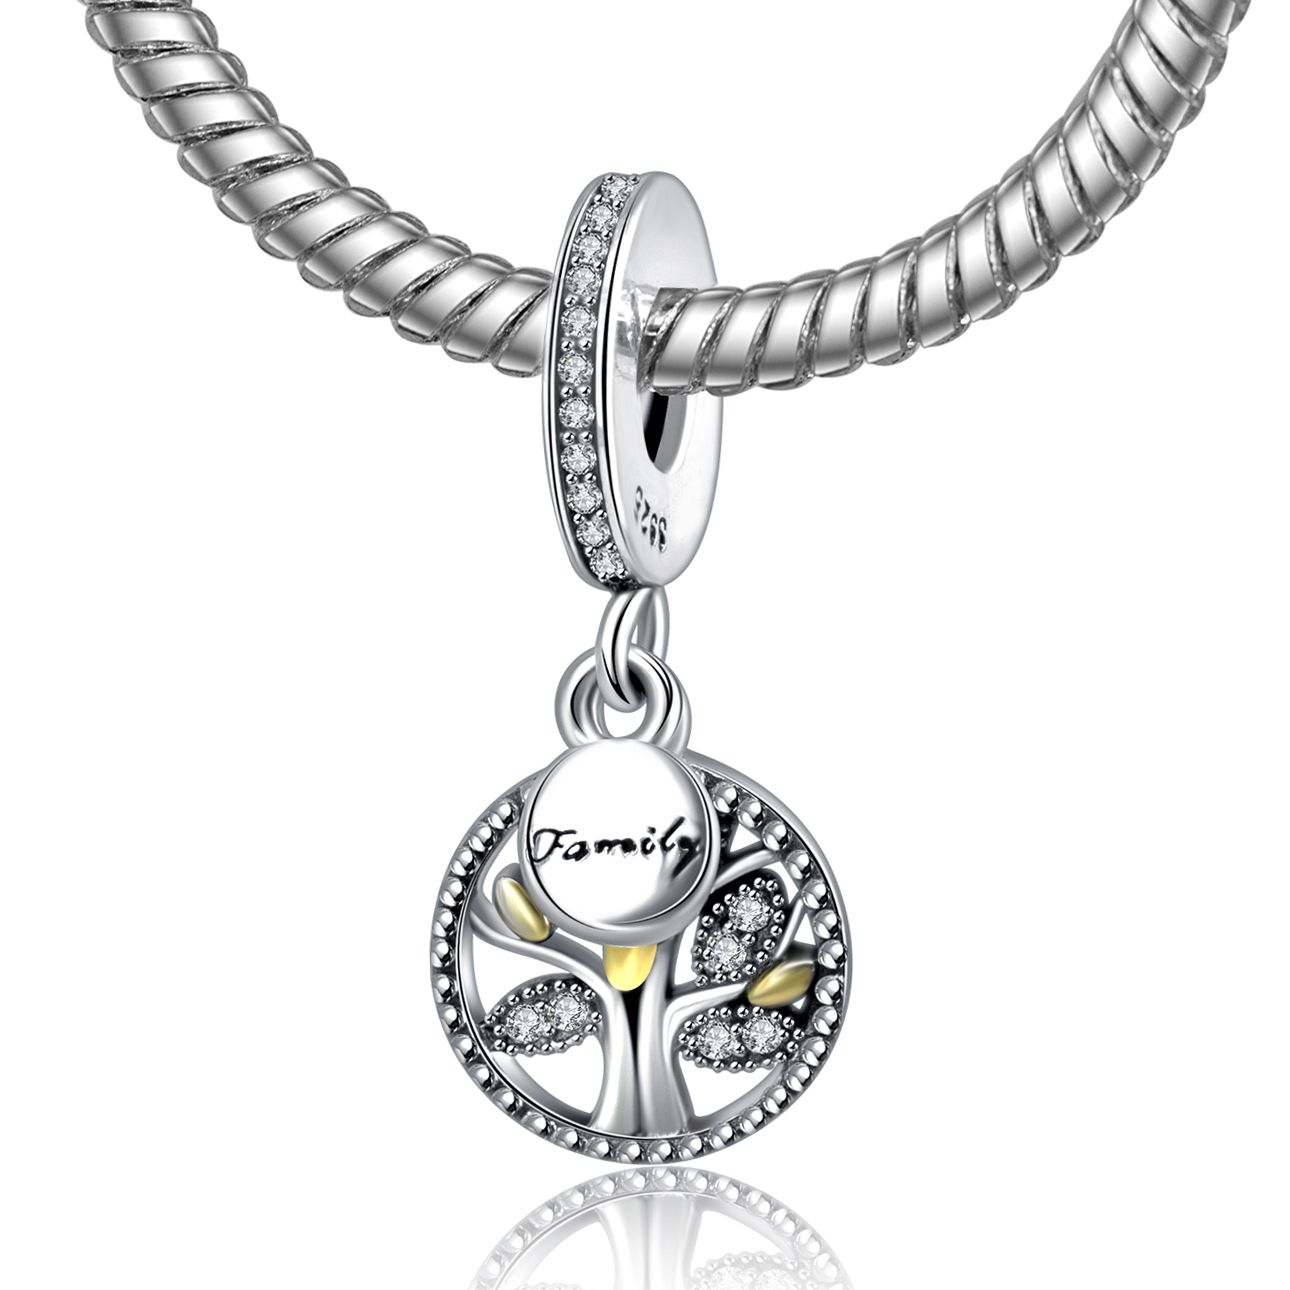 Luxury 925 Sterling Silver Family Tree With Gold Color Cubic Zirconia Pendant Charm Fit Pandora B With Images Pandora Bracelet Charms Sterling Silver Bead Pandora Bracelet